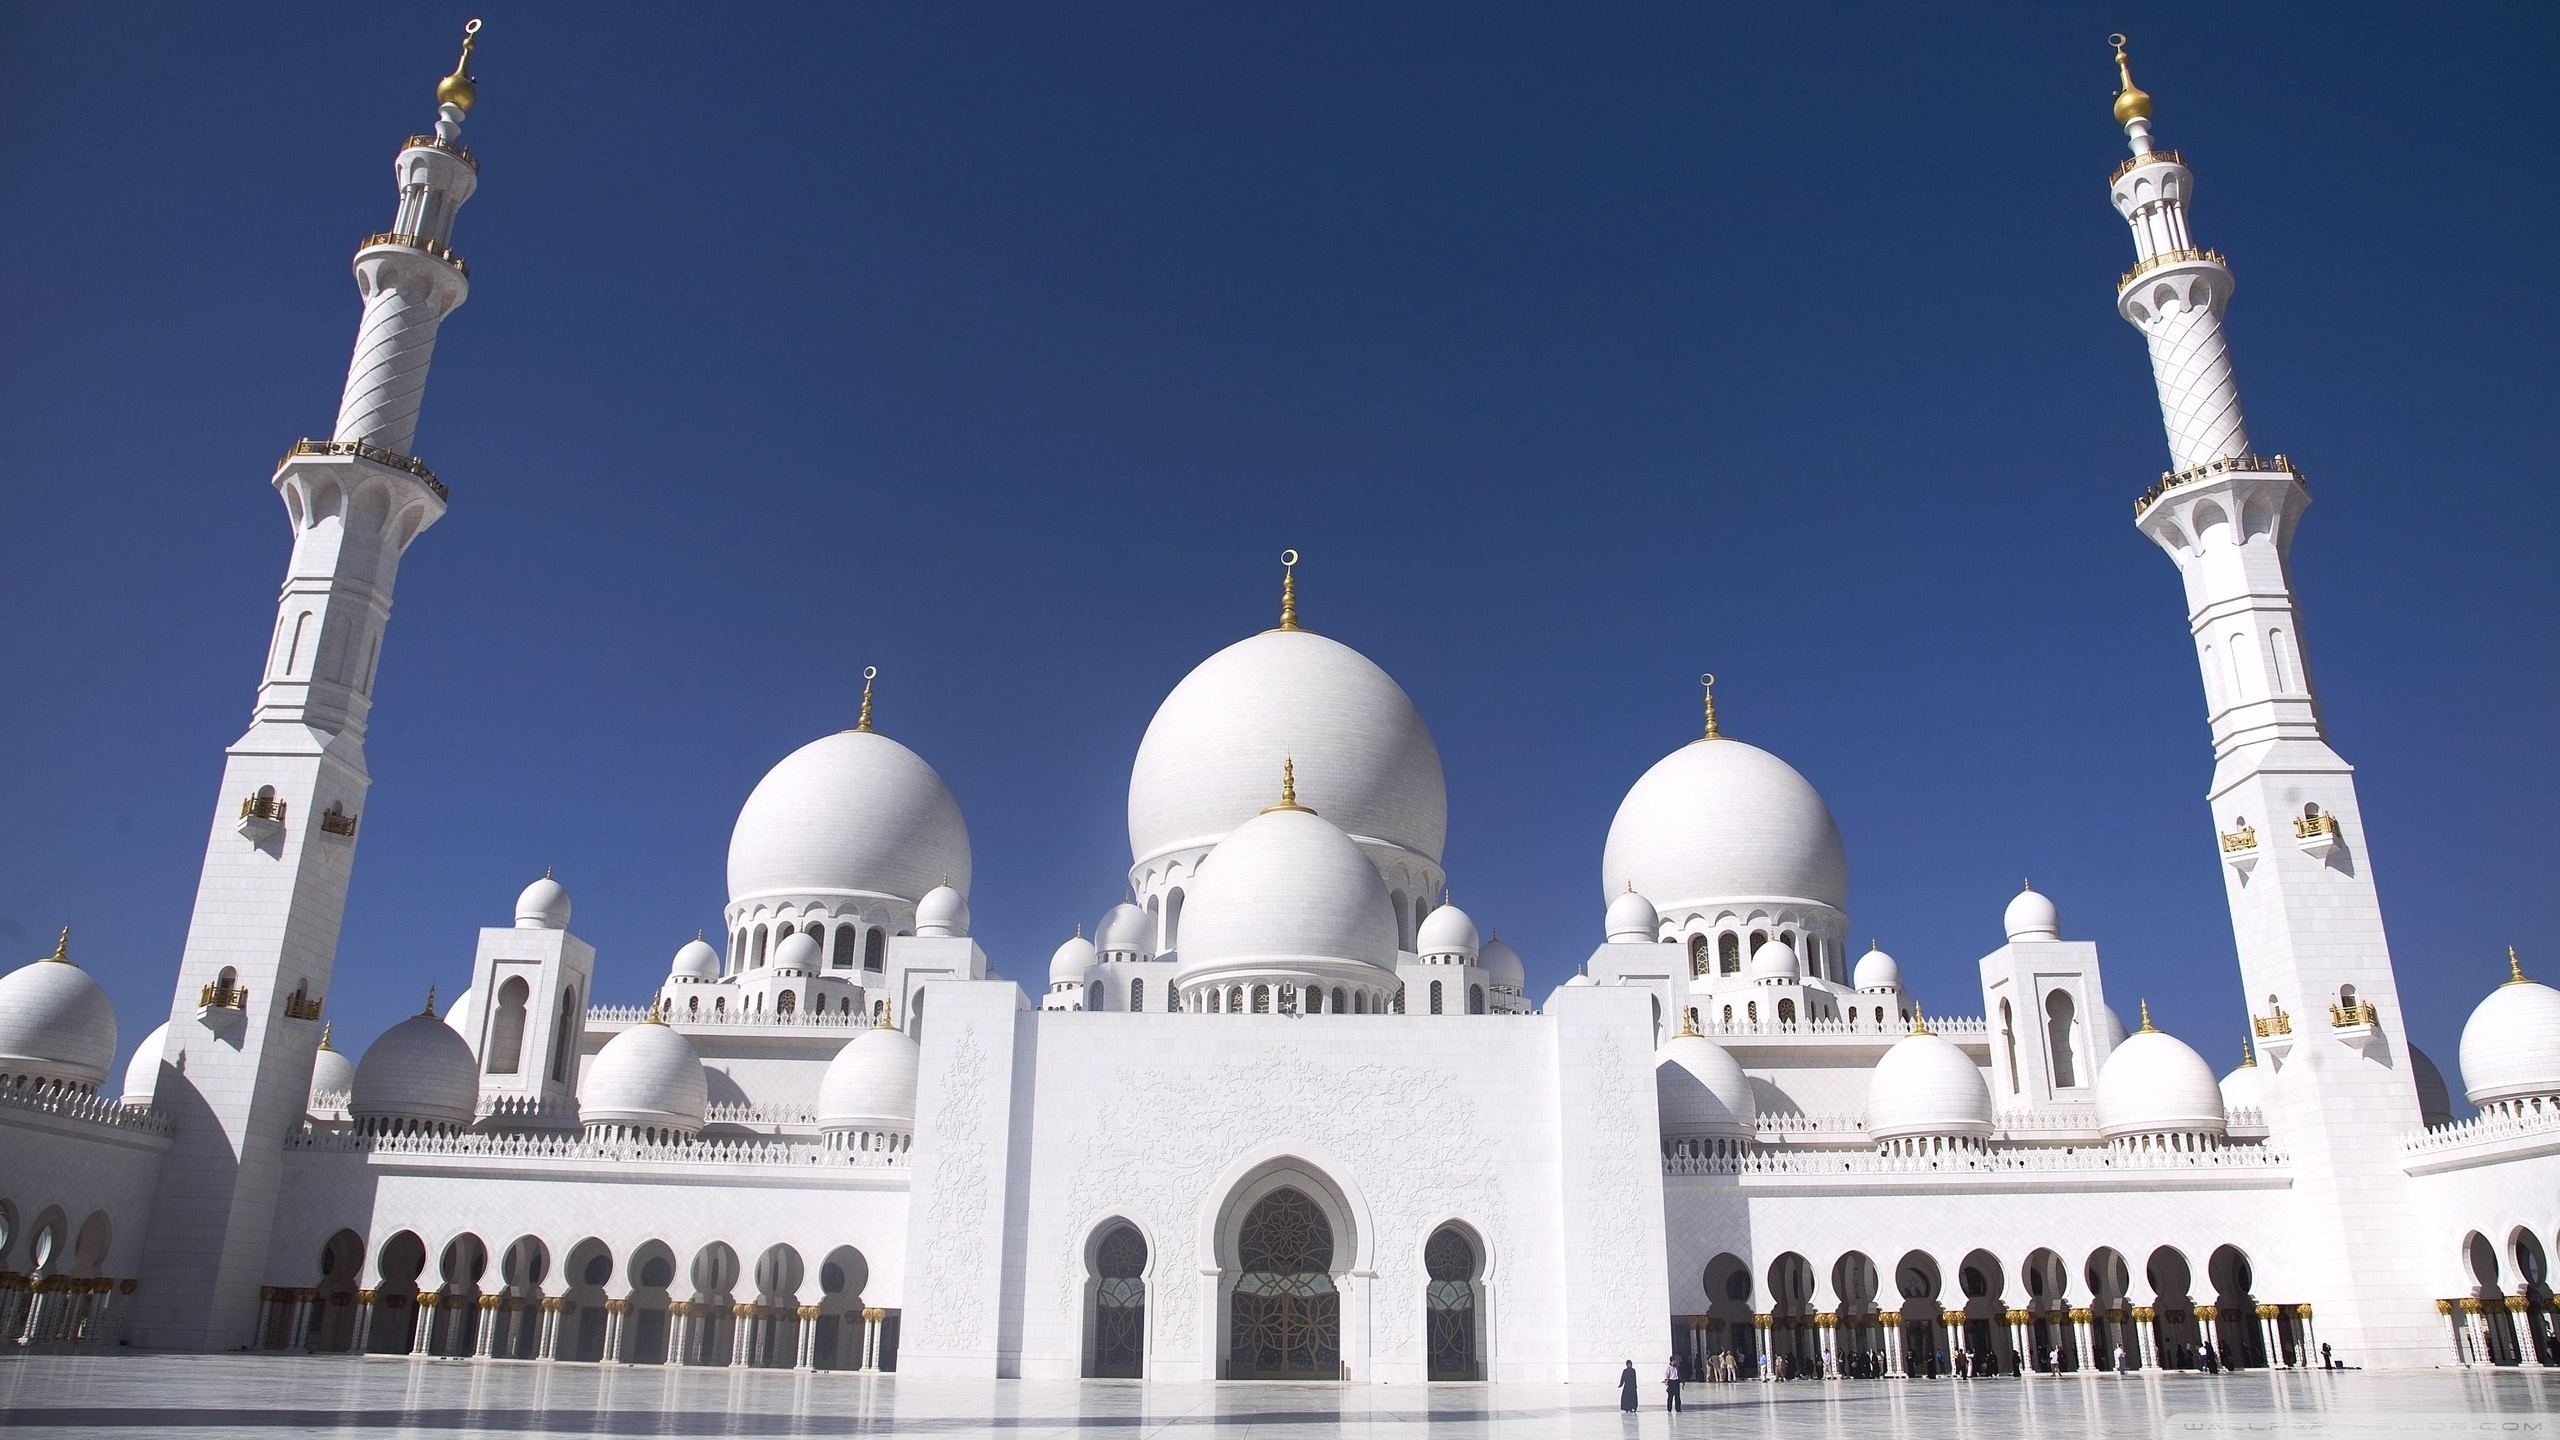 Hdwallpapers87com   Download Sheikh Zayed grand mosque abu dhabi 2560x1440